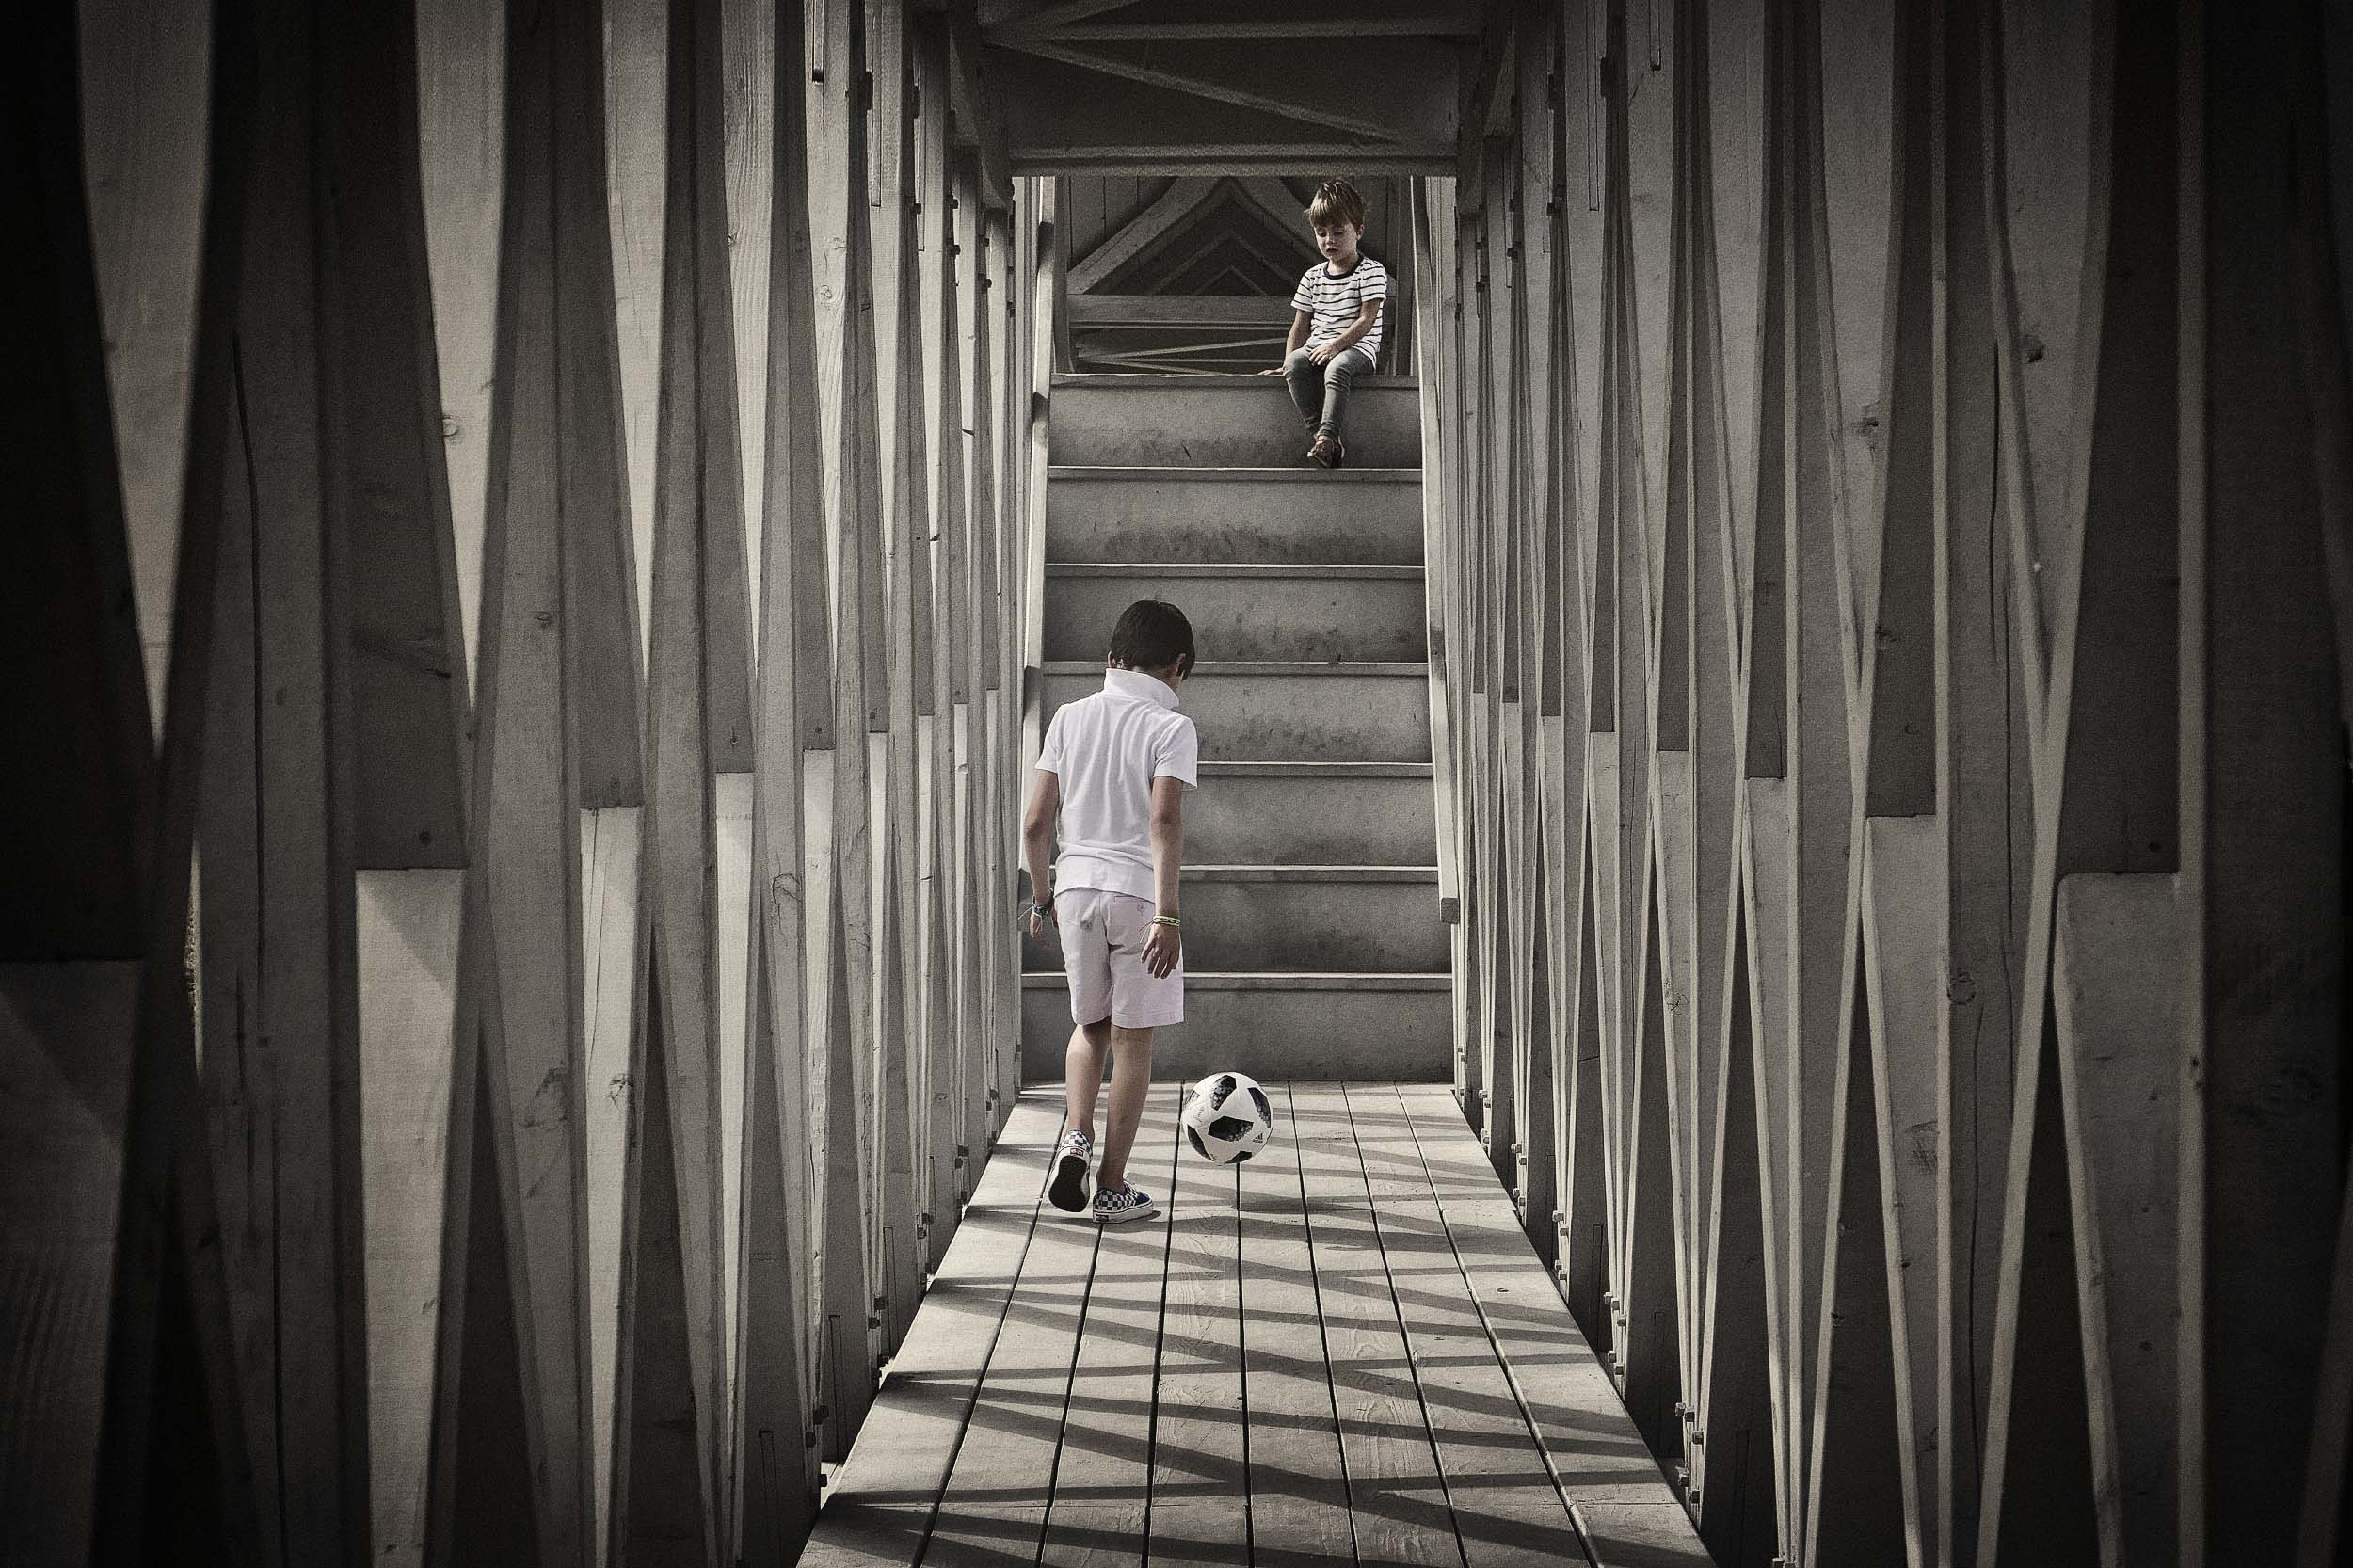 Photo by Carles Carreras. Conceptual and Creative Photographer from Catalonia